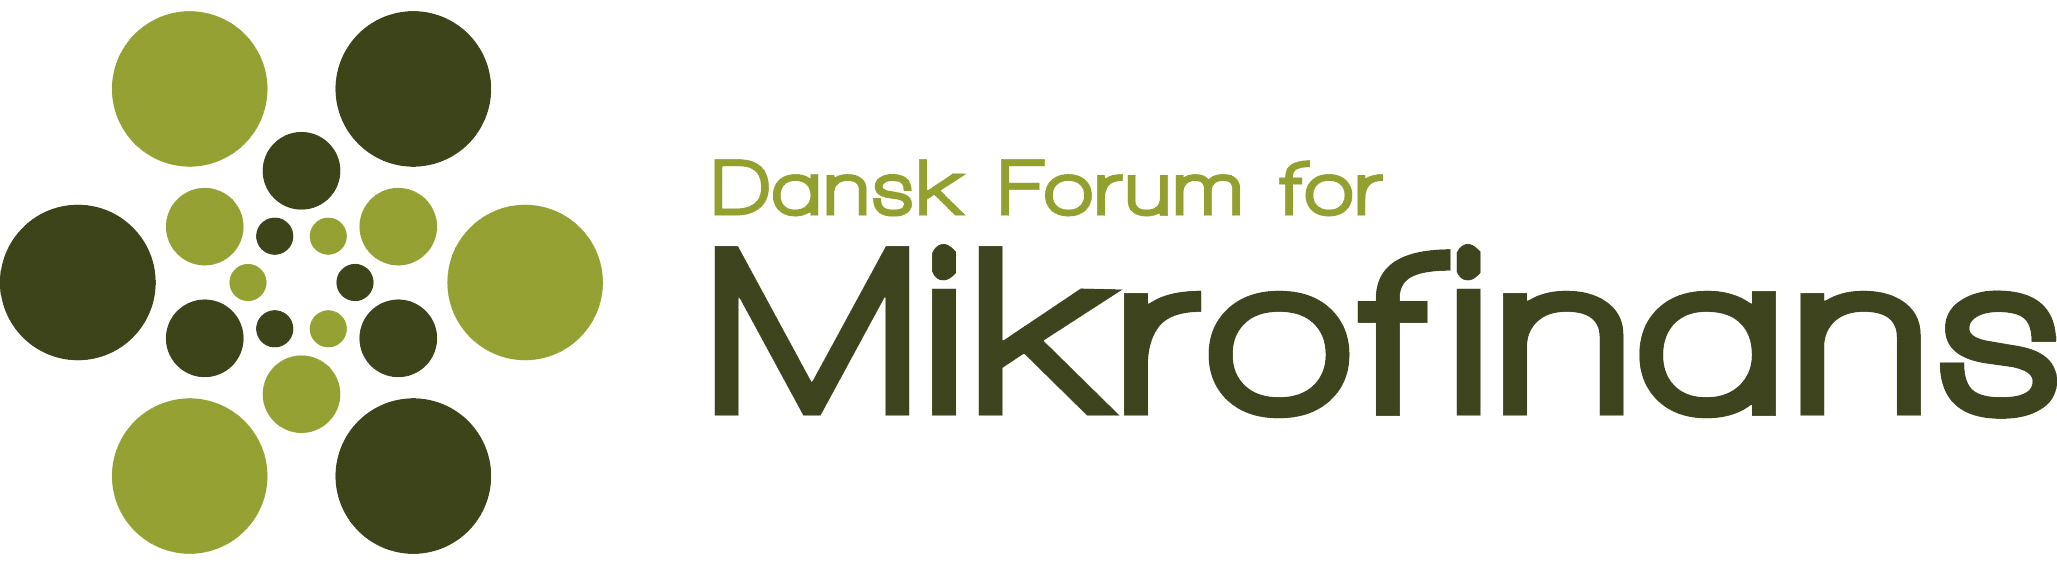 Dansk Forum for Mikrofinans